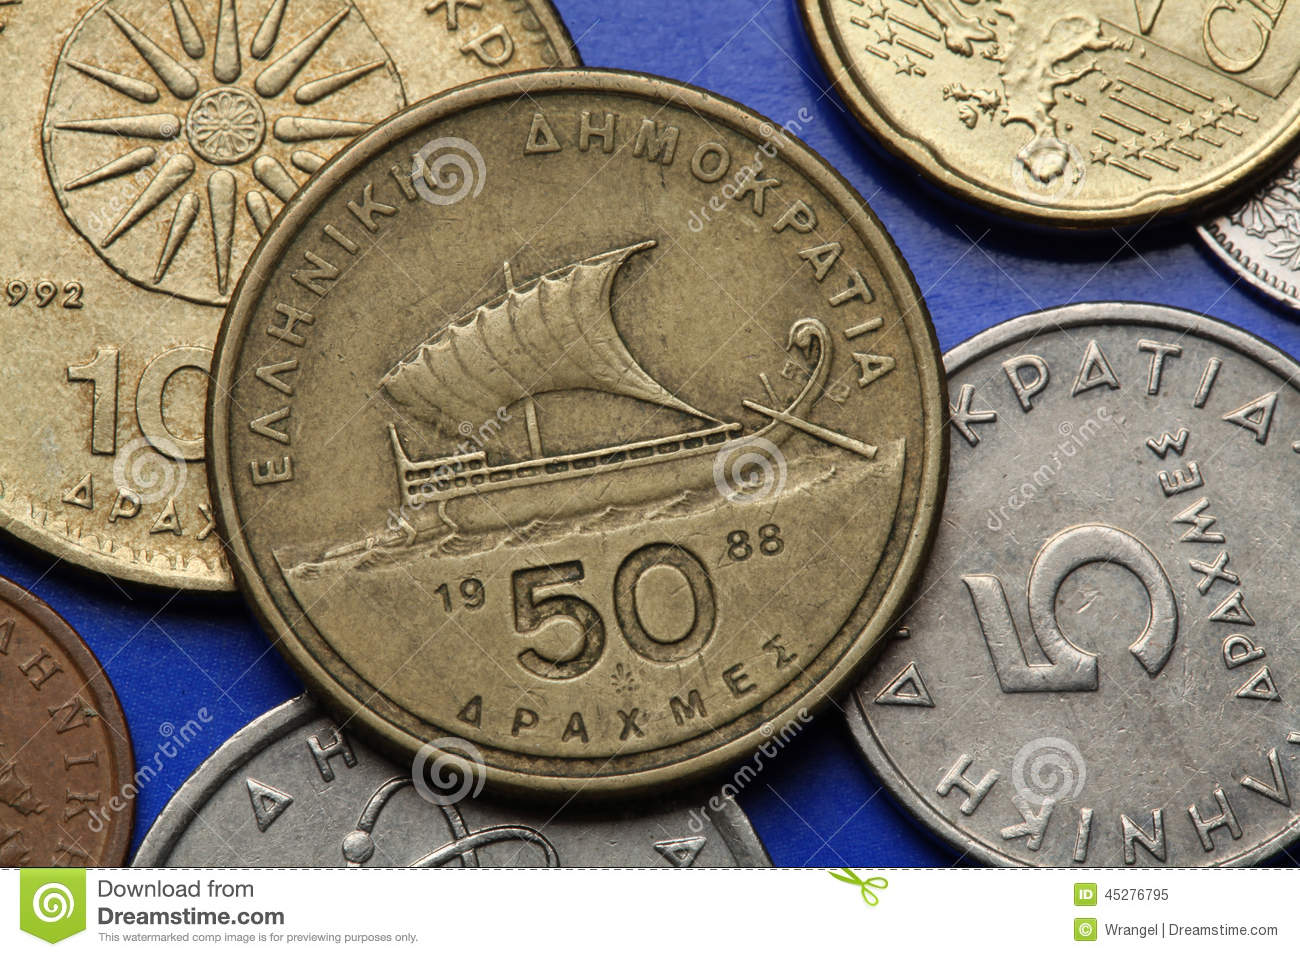 Coins of Greece stock image. Image of jason, coins, object ...